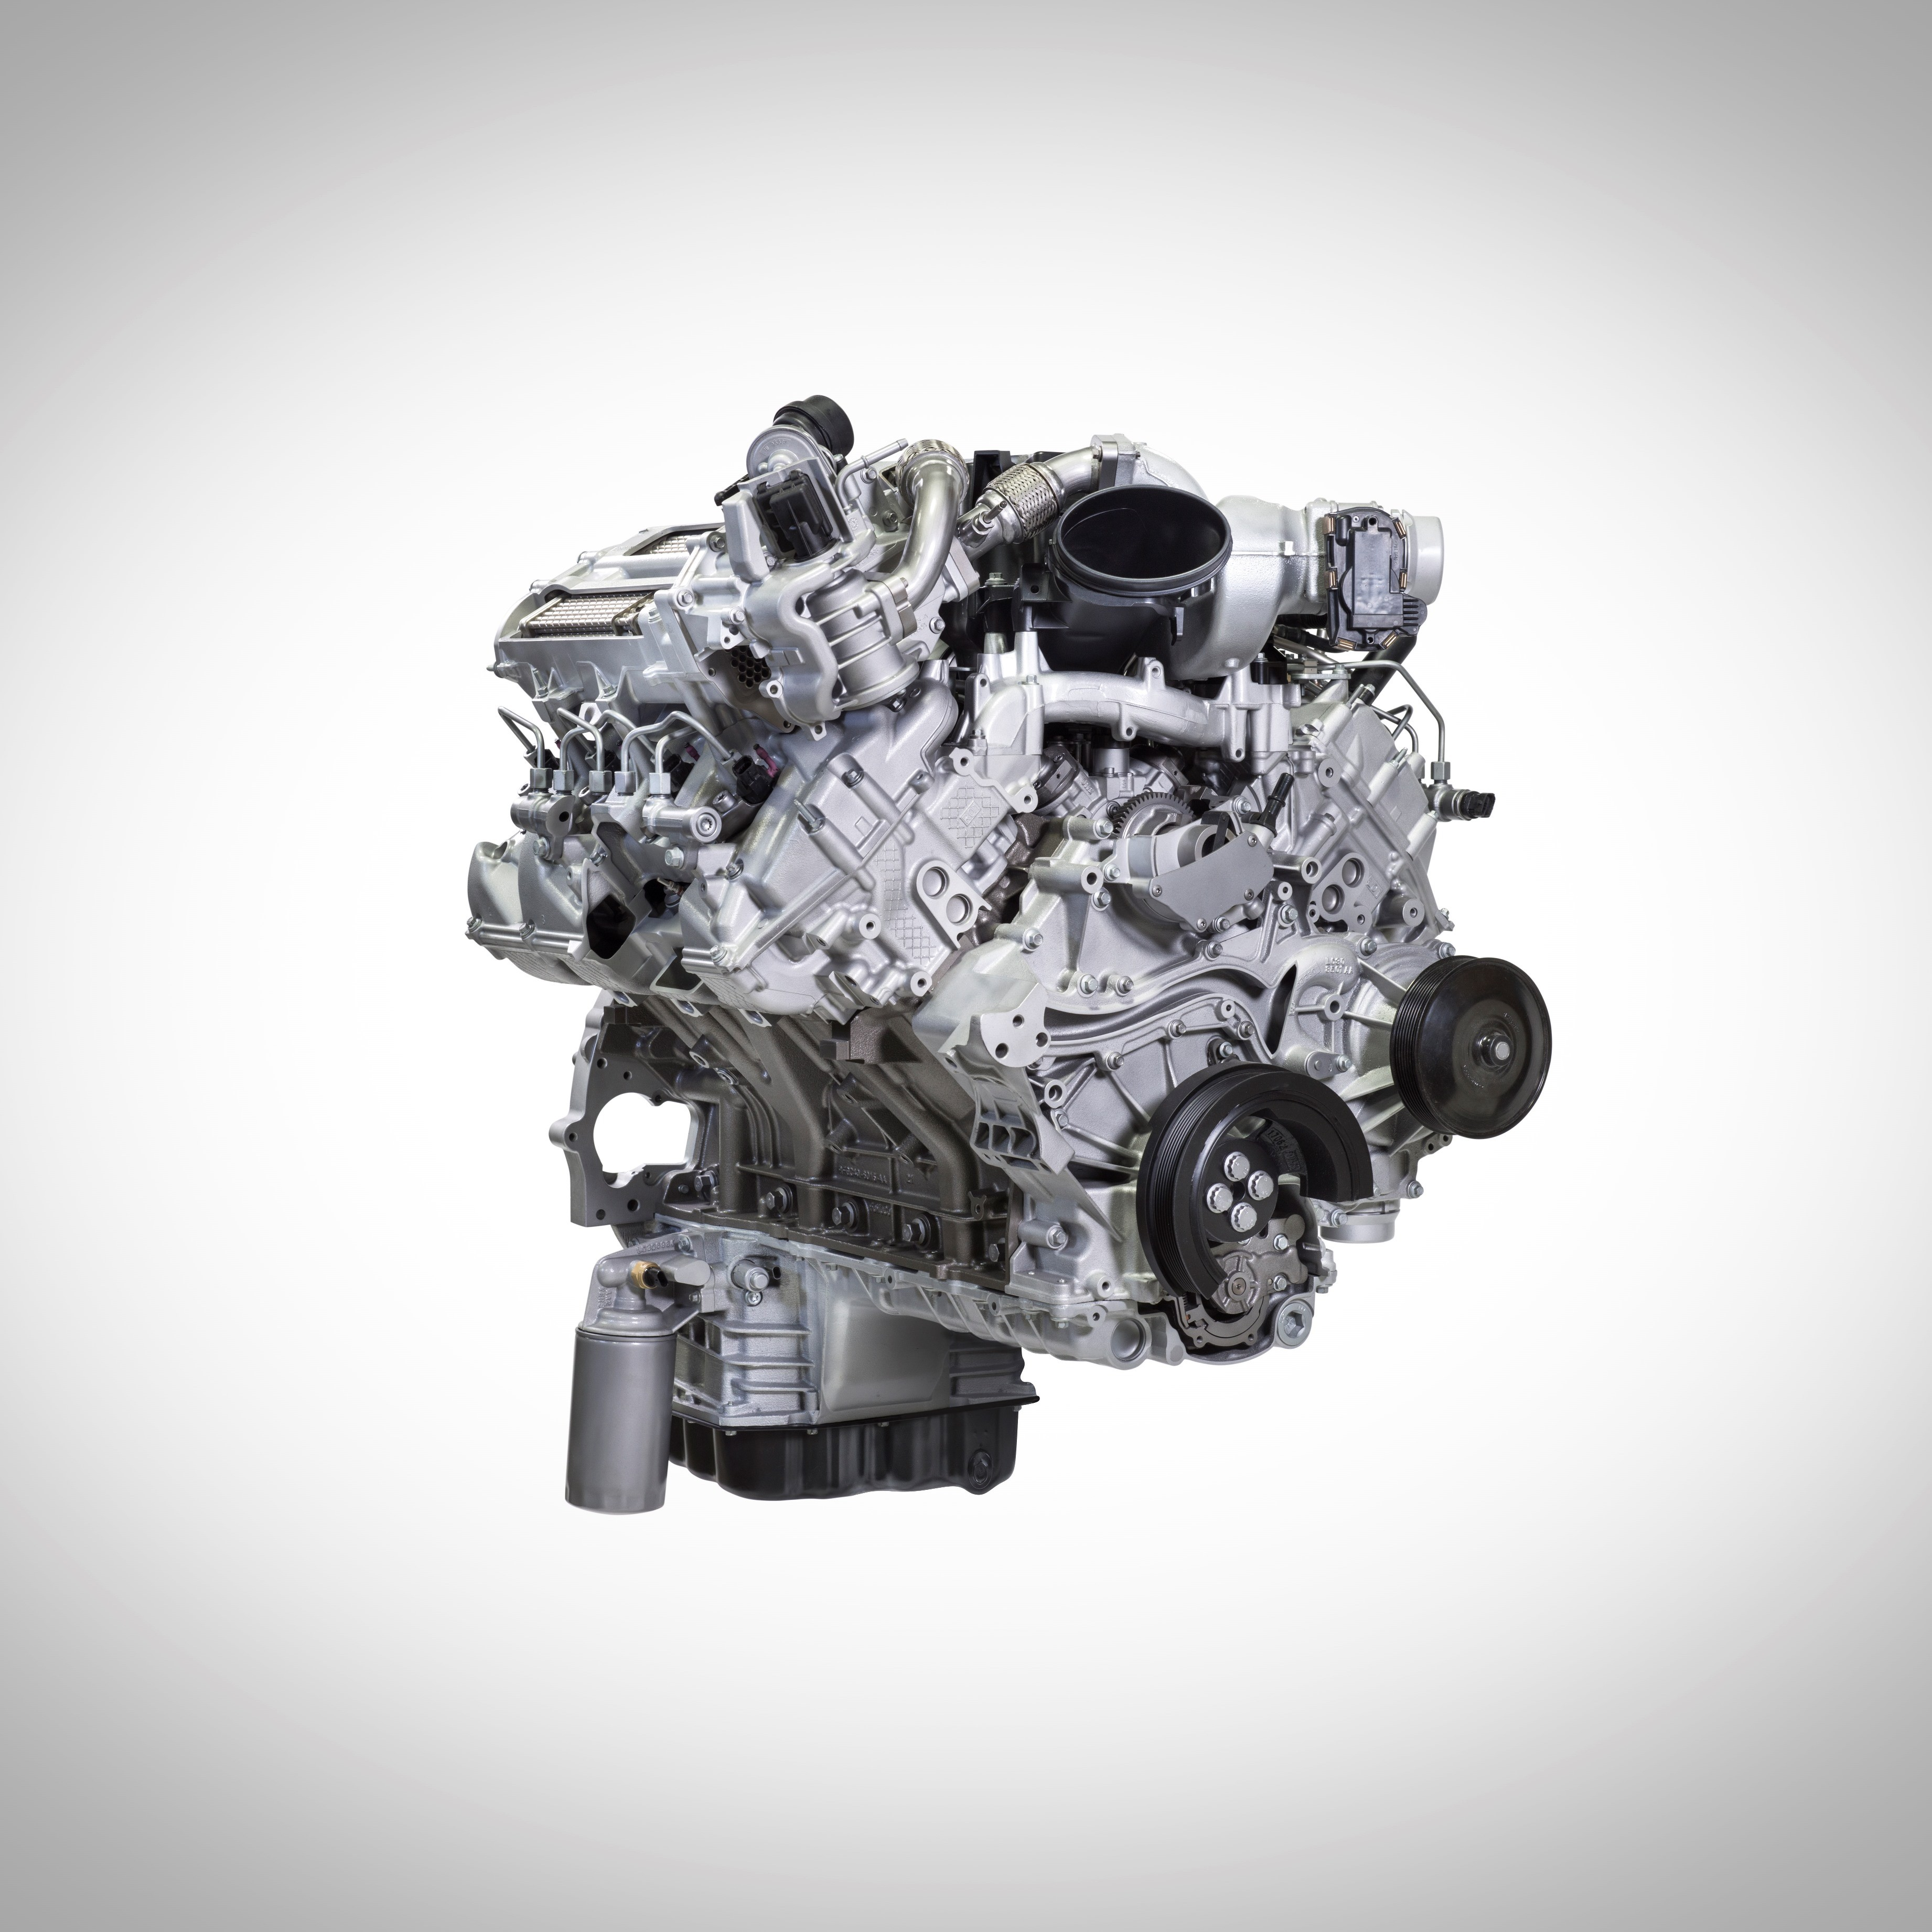 Ford 7.3L V8 Can Be Shoehorned Into Mustang, F-150 ...